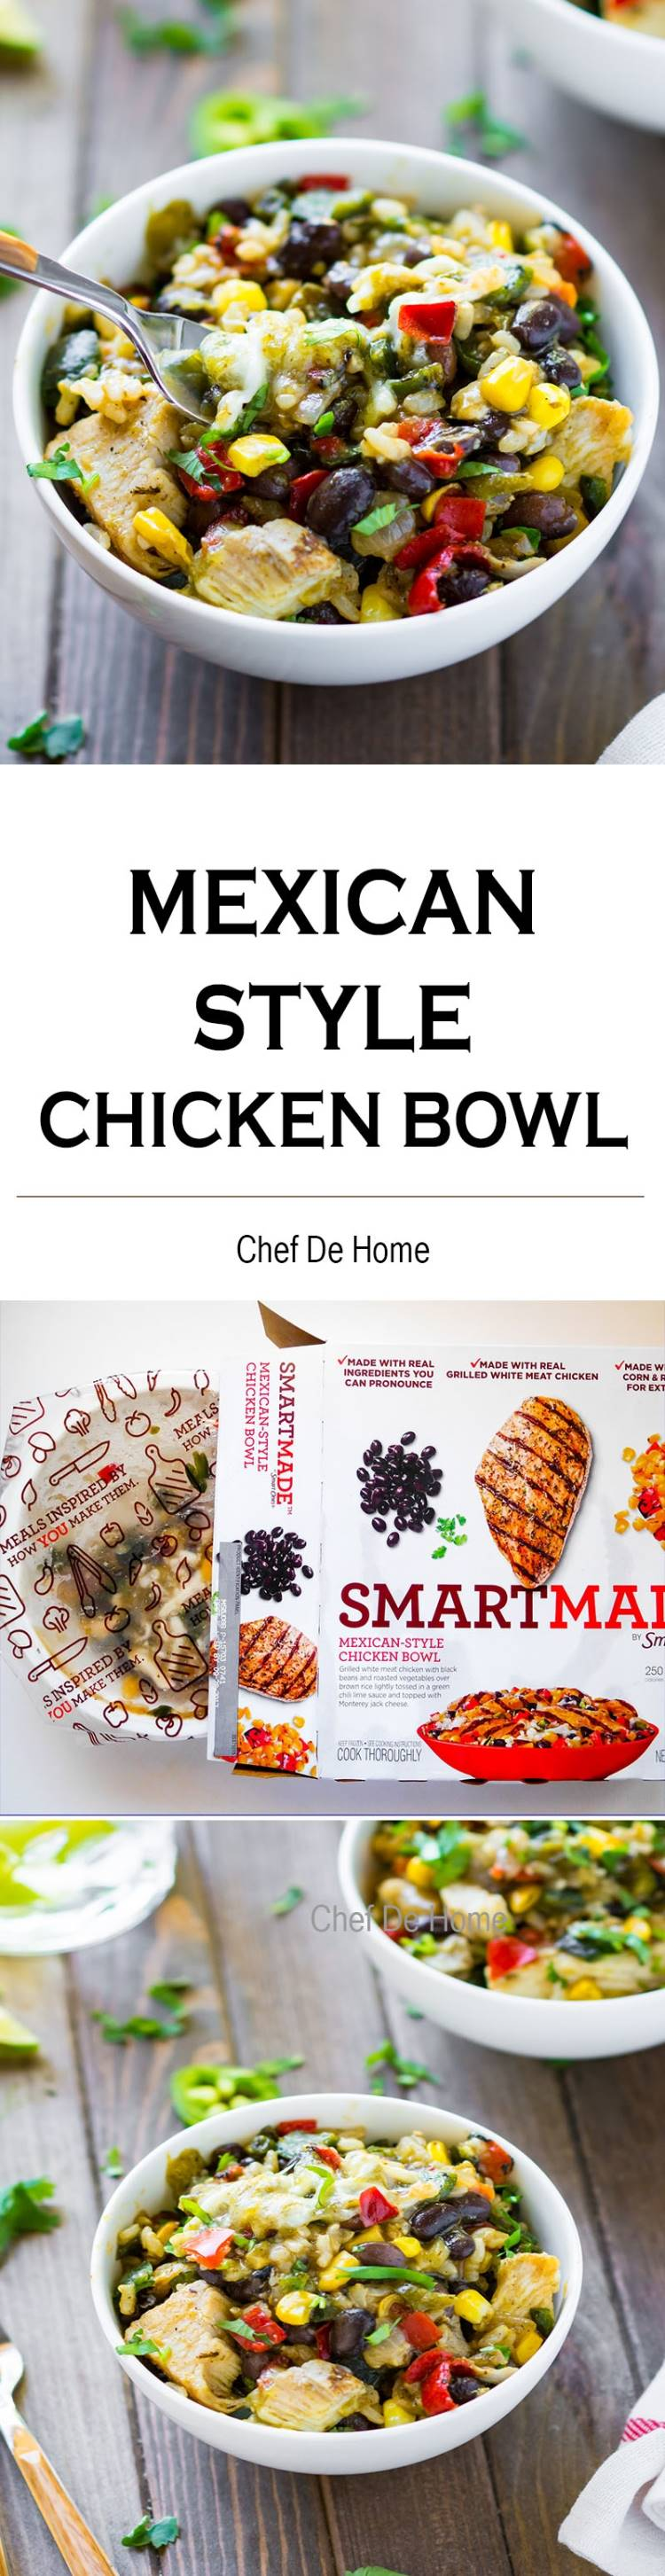 Kraft SmartMade Mexican Style Chicken Bowl with Brown Rice and Black Beans